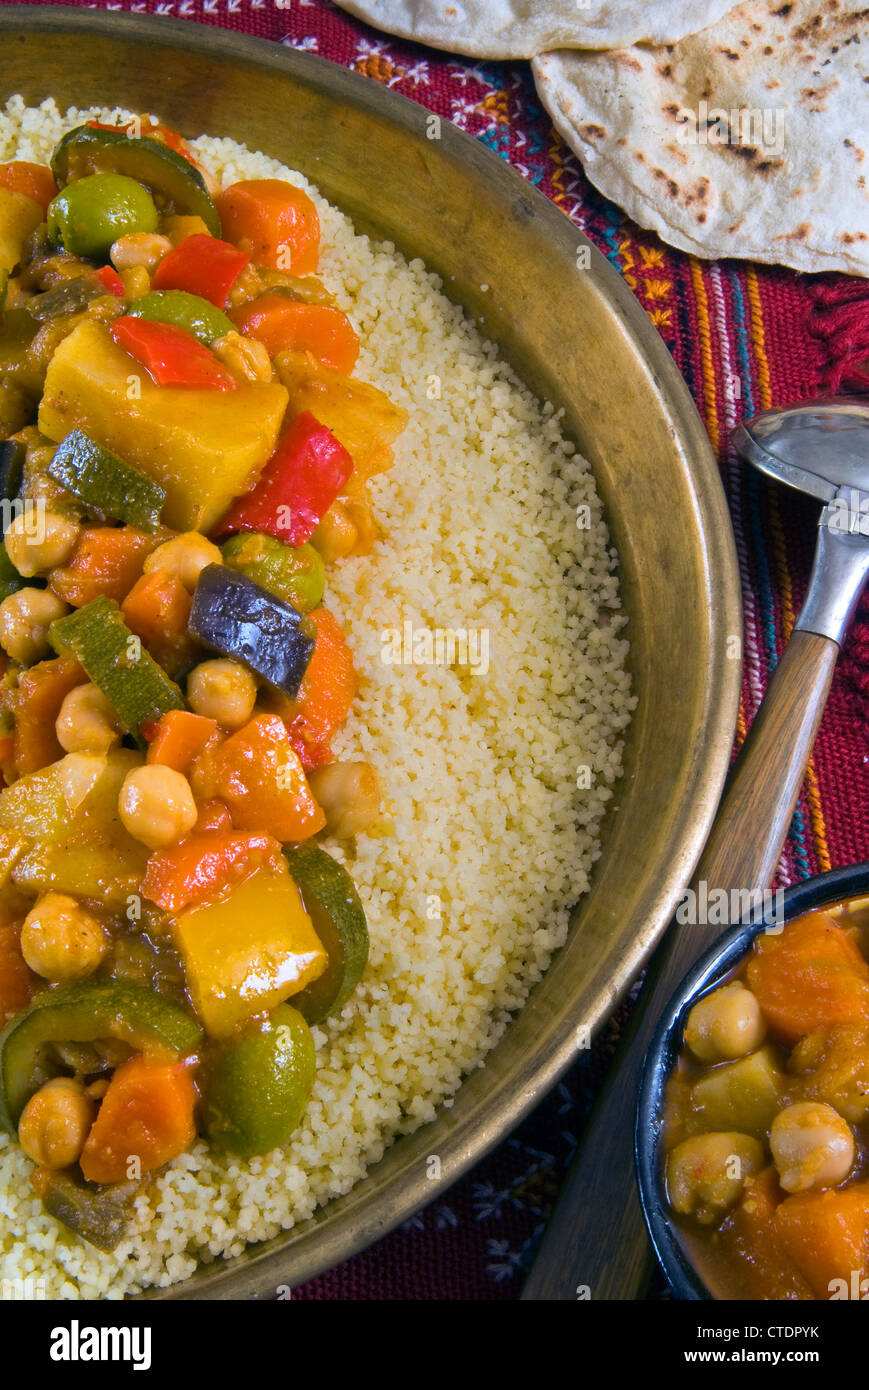 Seven vegetable couscous moroccan food moroccan cuisine for About moroccan cuisine